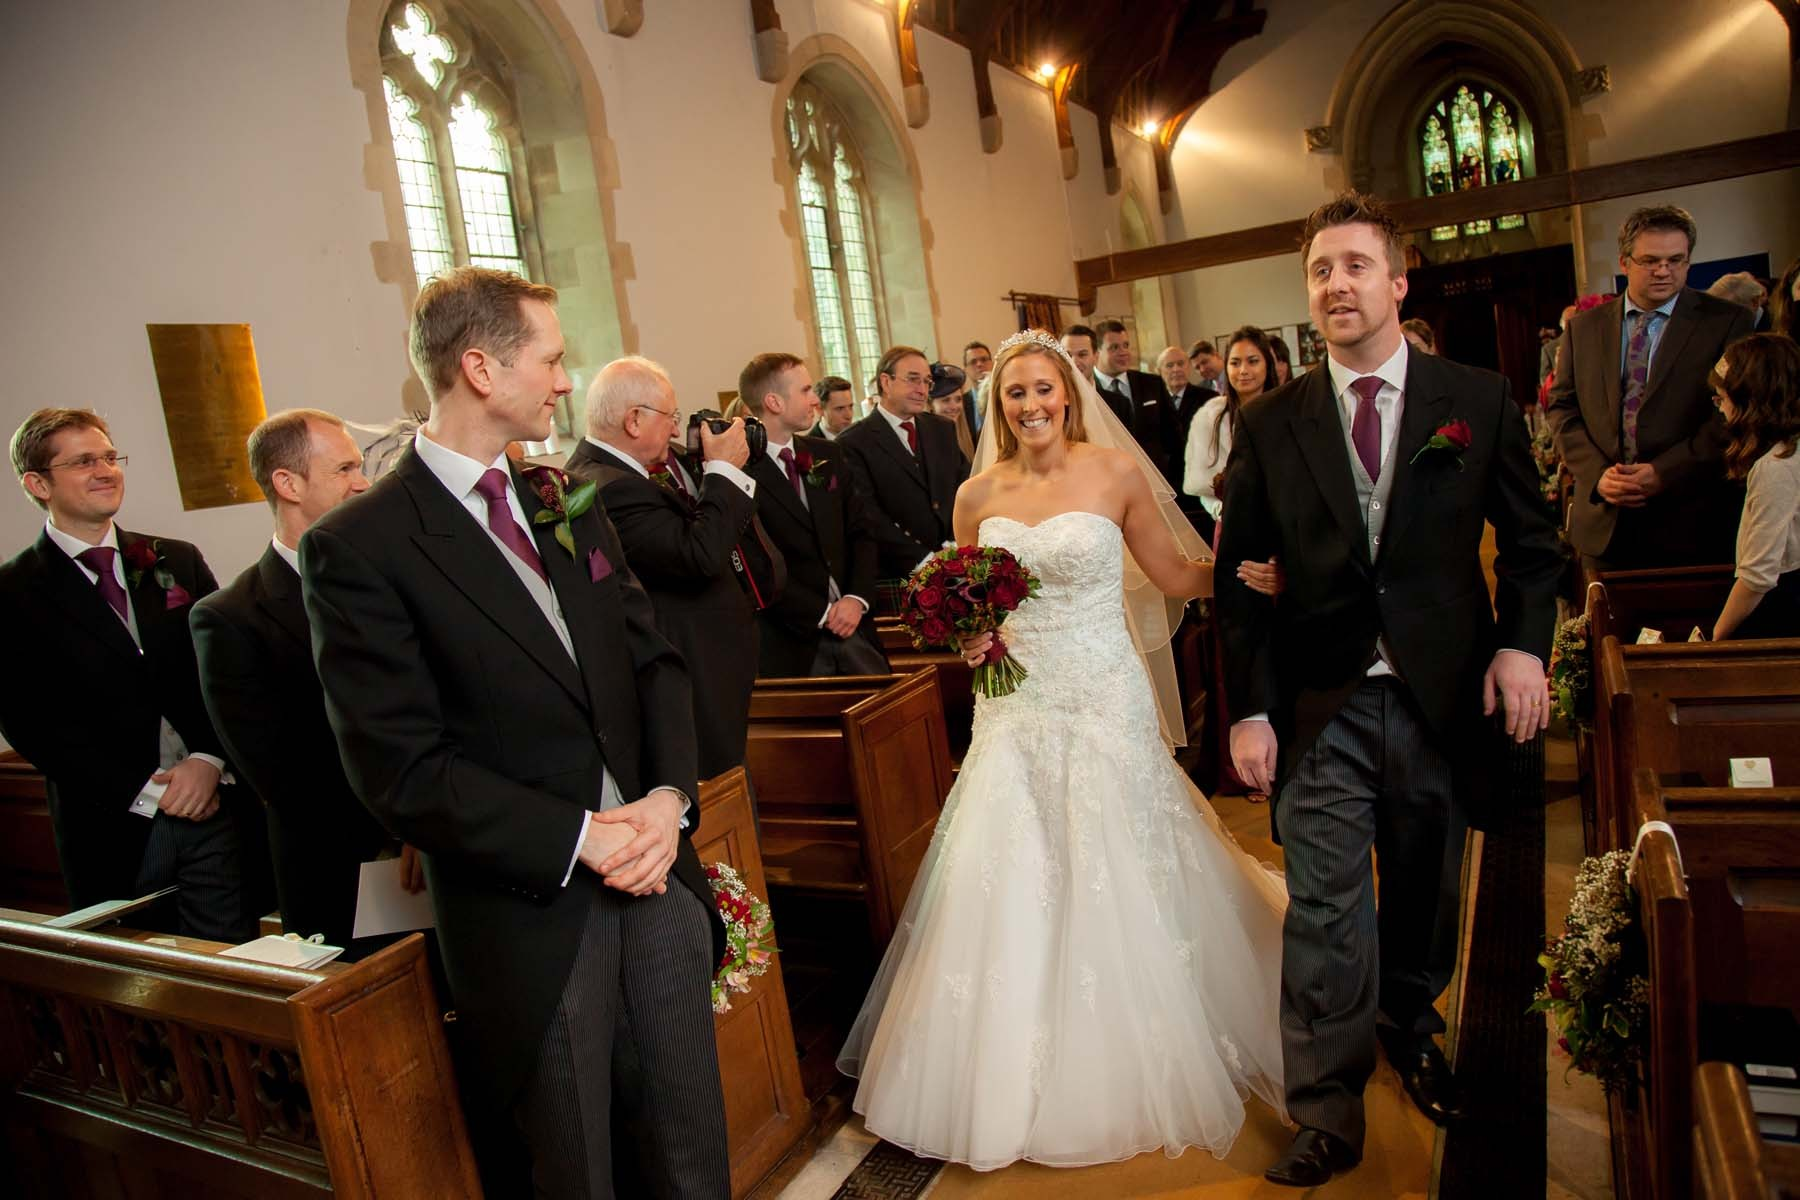 Sussex & Surrey Wedding Photographer - Ceremony (9)